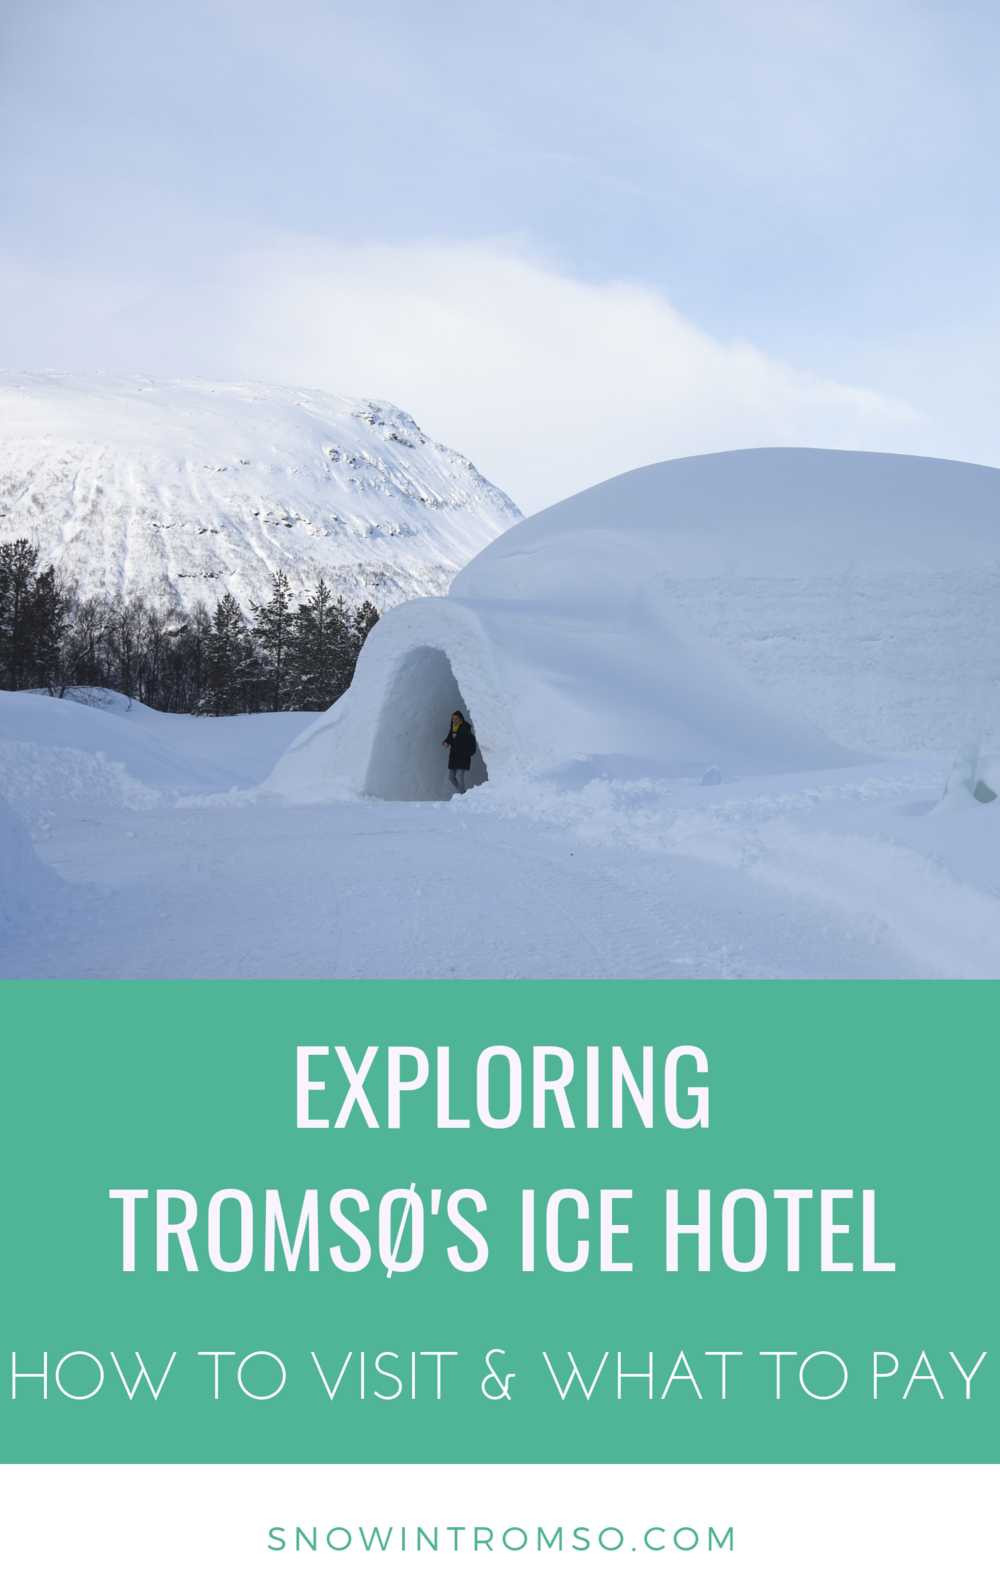 All you need to know about visiting and staying in the Tromsø Ice Domes - just a click away!